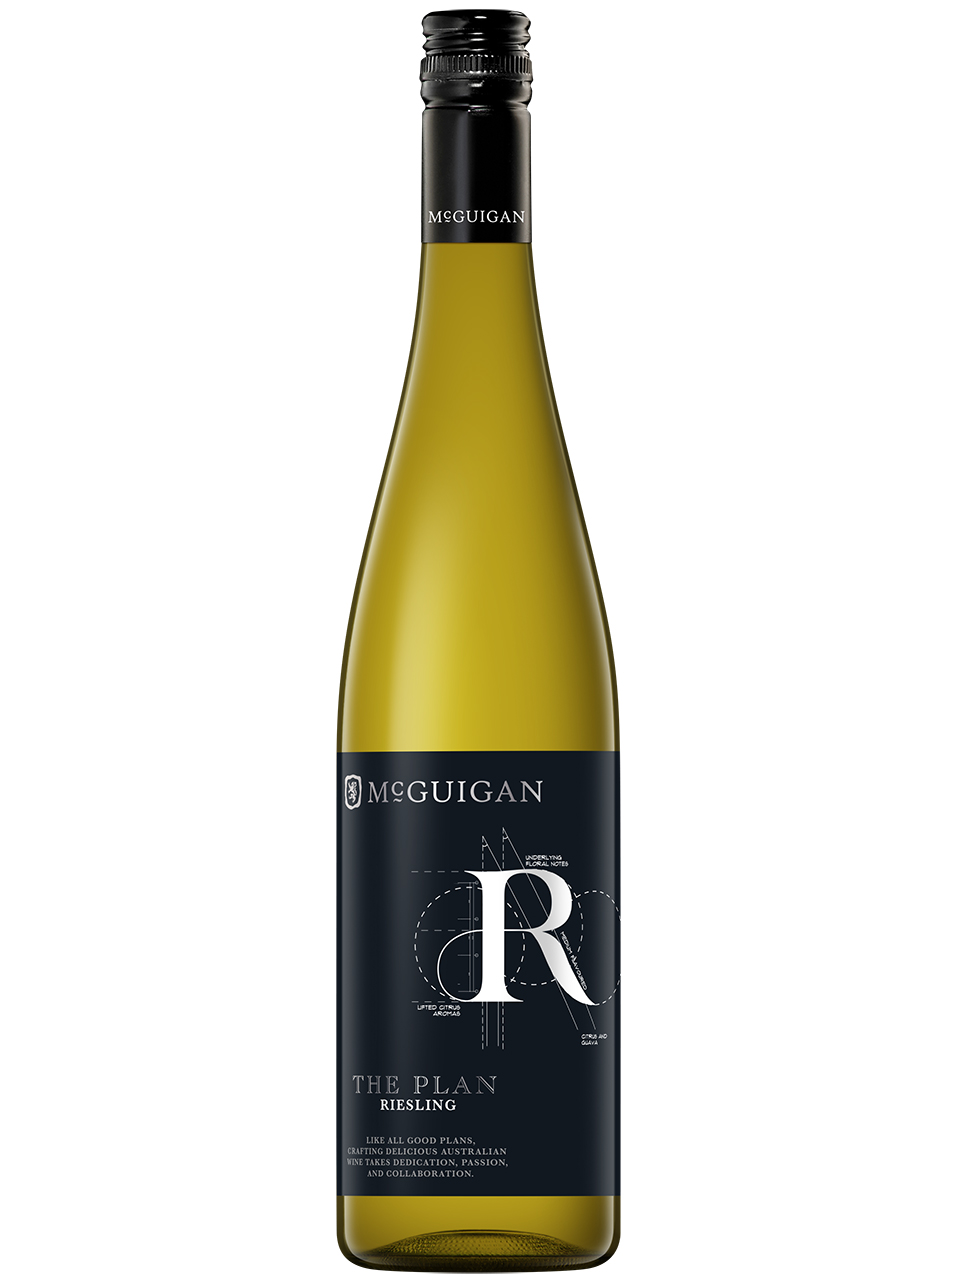 McGuigan The Plan Riesling